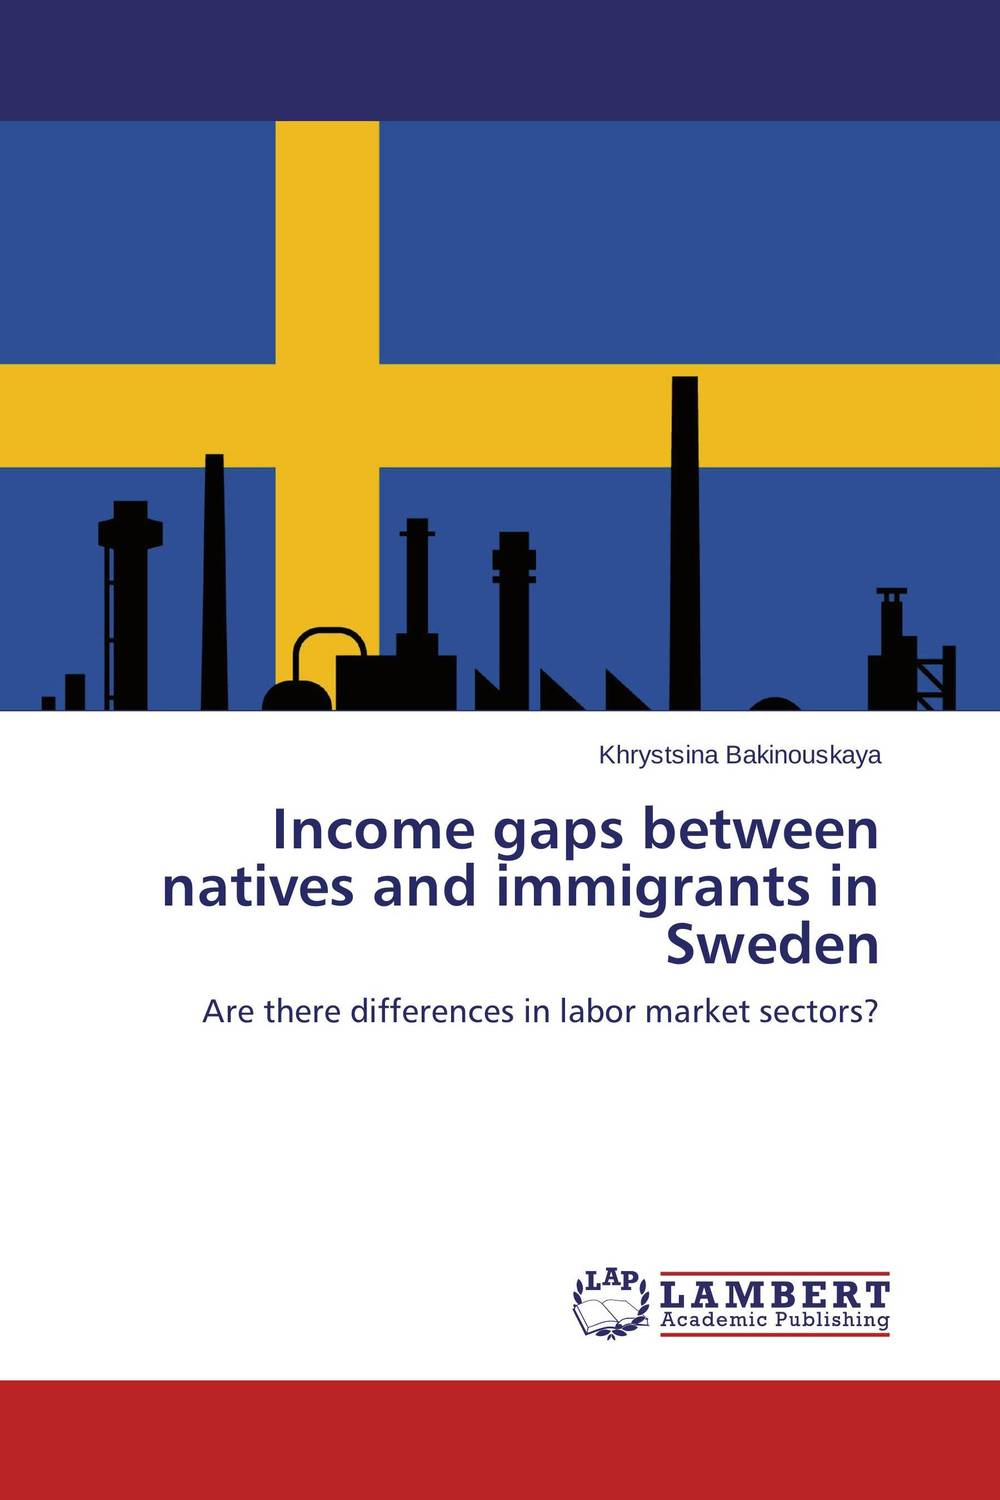 Income gaps between natives and immigrants in Sweden social media usage among emirati digital natives